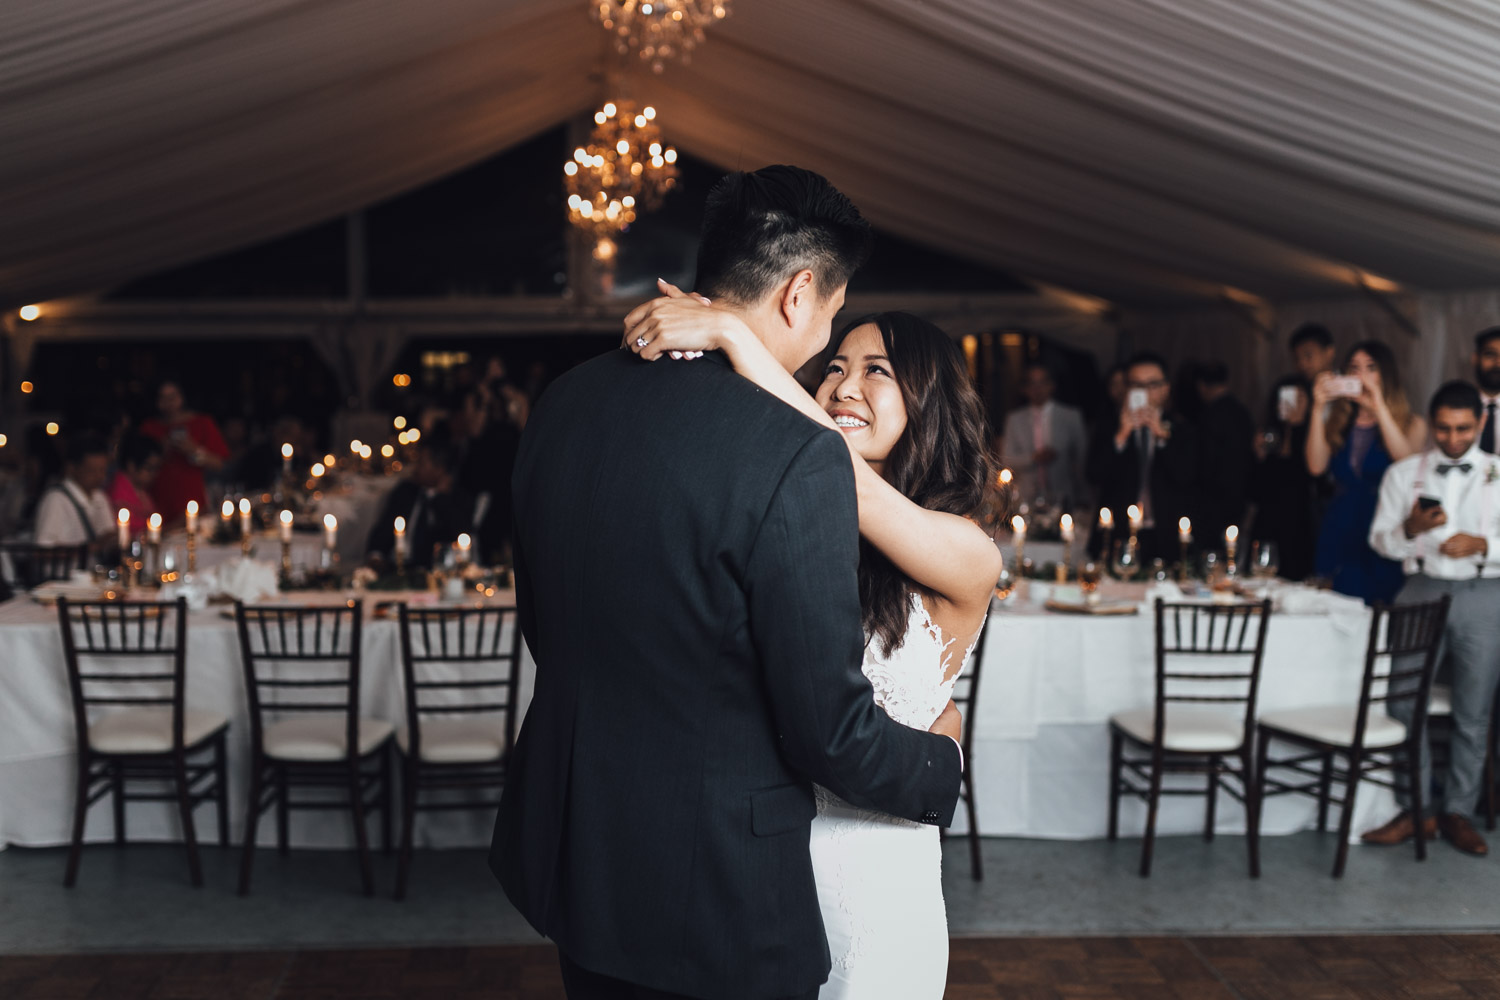 first dance vancouver wedding reception photography at hart house restaurant in bc